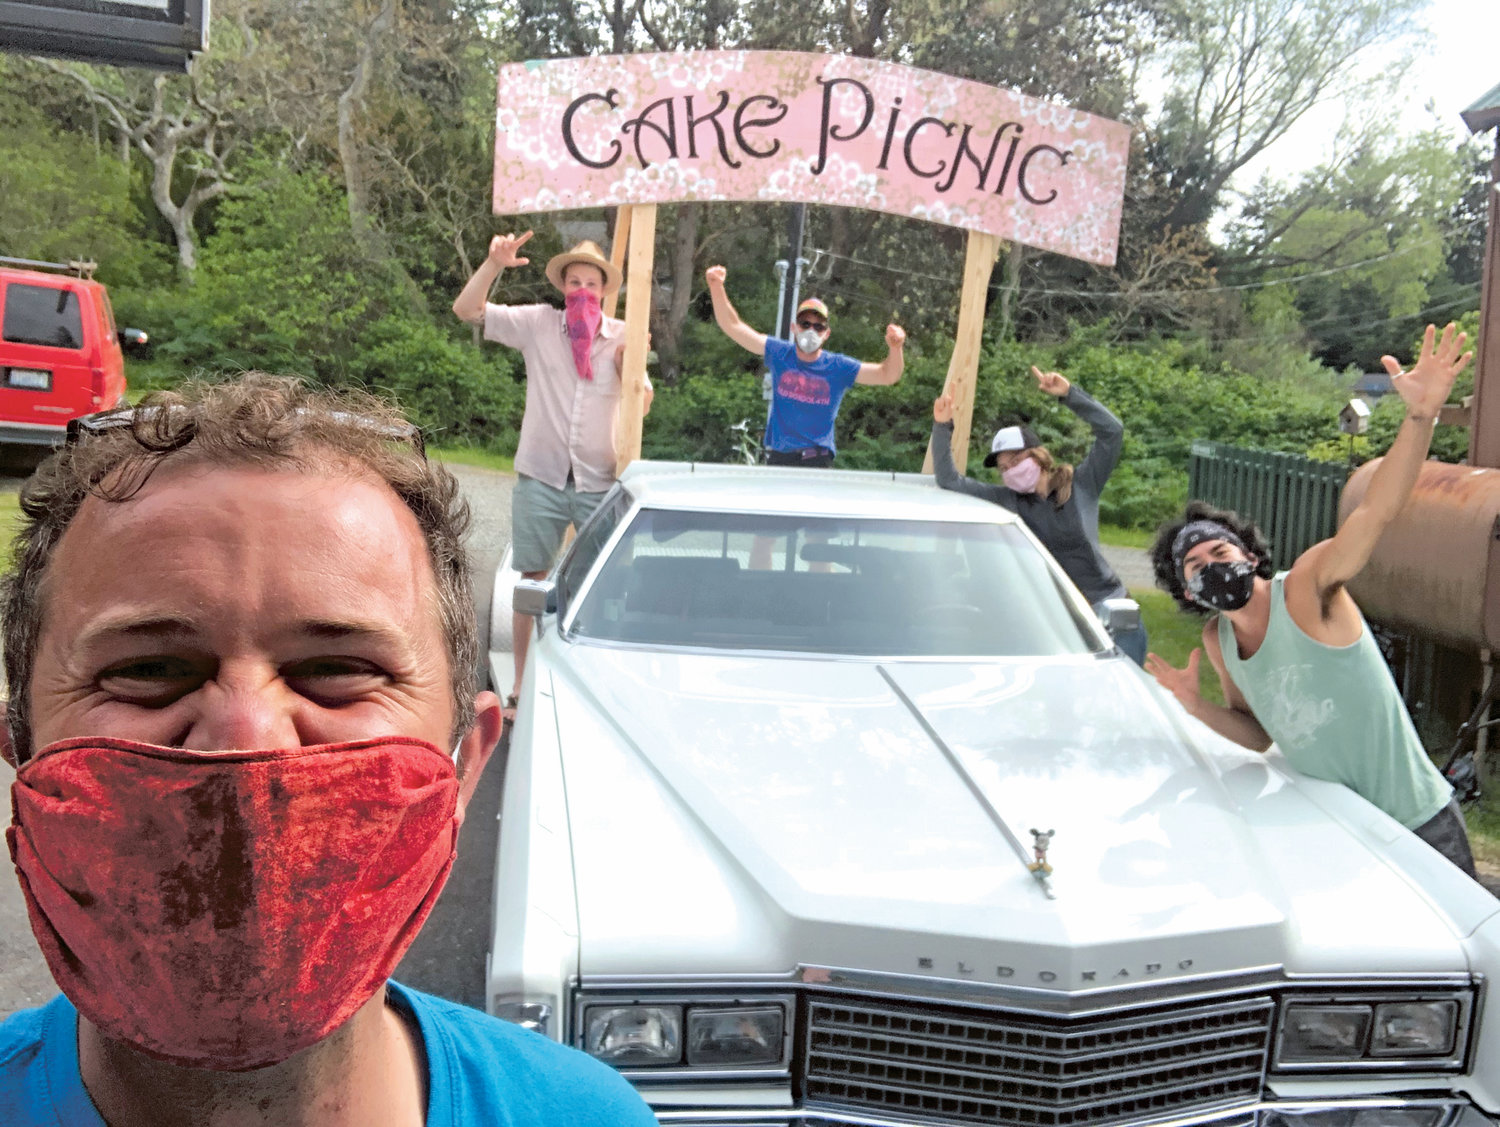 Danny Milholland and his Cake Picnic team plan a caravan through town May 16, when the annual Rhododendron Festival Grand Parade and Cake Picnic would have happened, had it not been canceled due to the coronavirus. Instead of gathering, community members can bake their own cakes, dress up and dance in their front yards as the picnic caravan drives by.